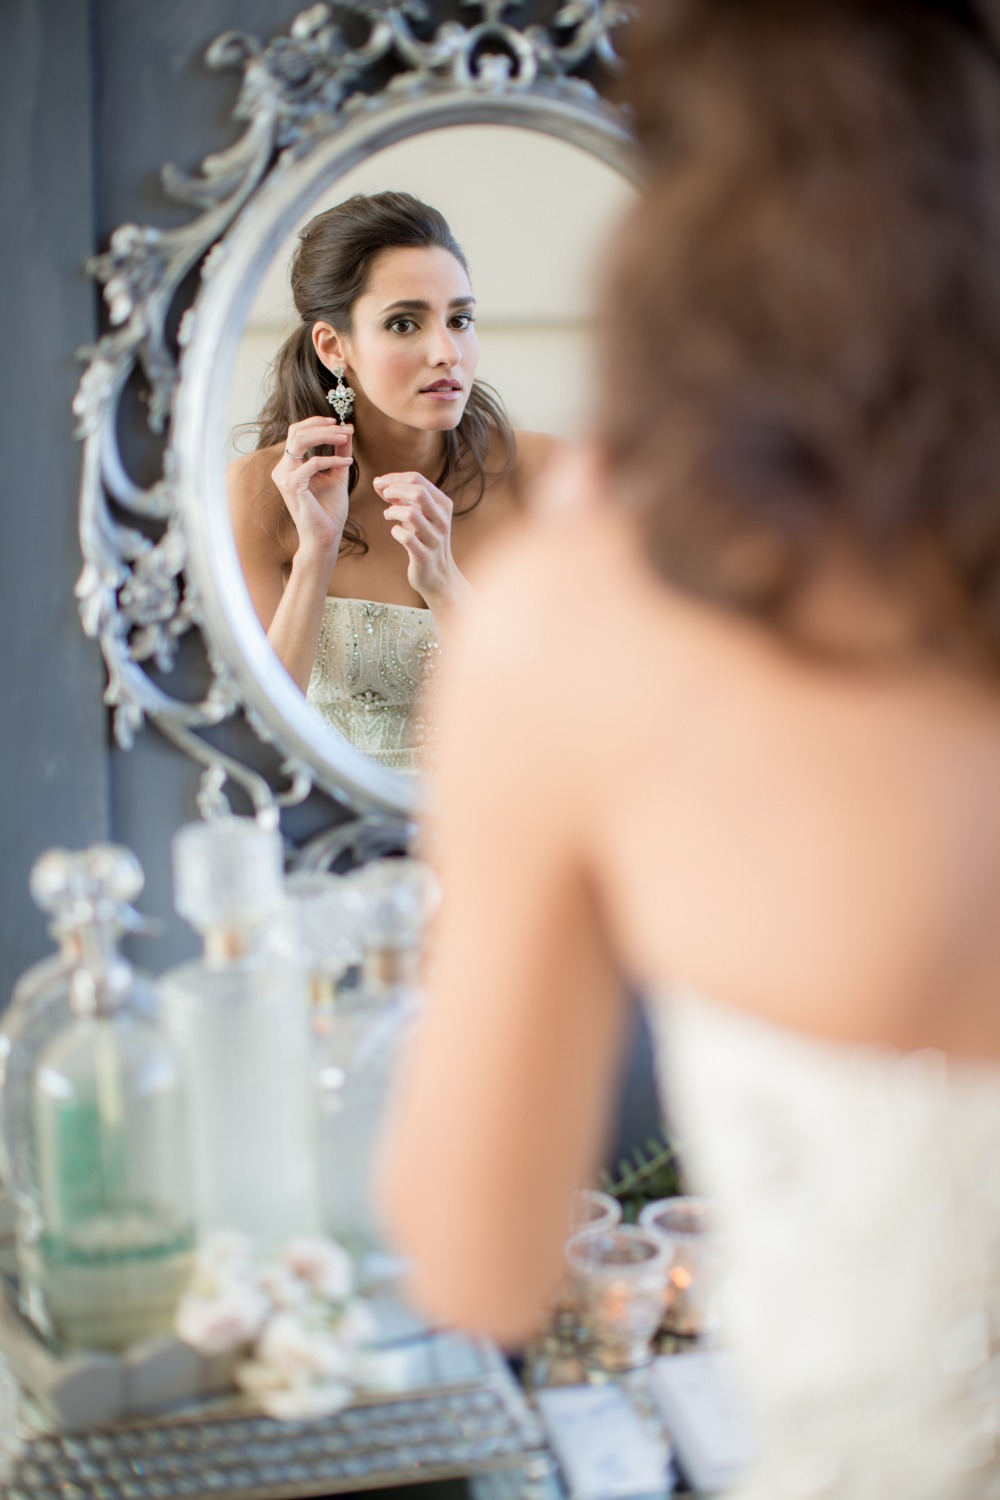 Getting ready bridal portrait idea